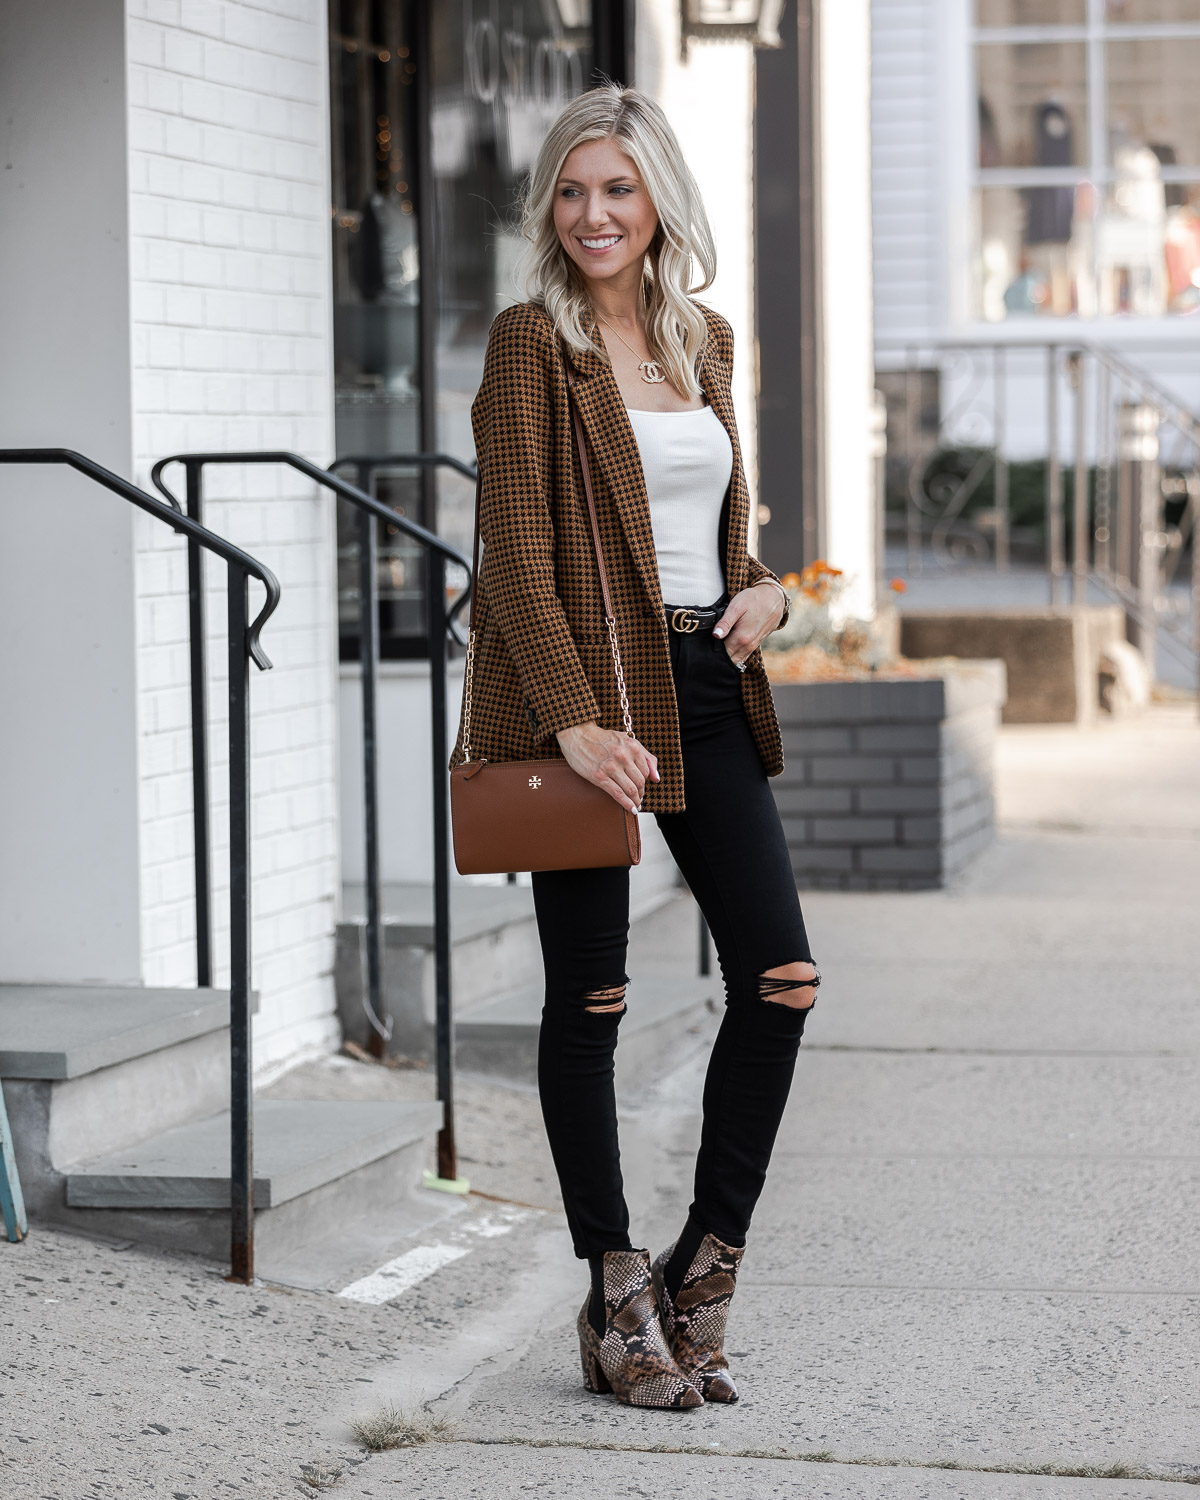 black and brown outfit for Fall The Glamorous Gal